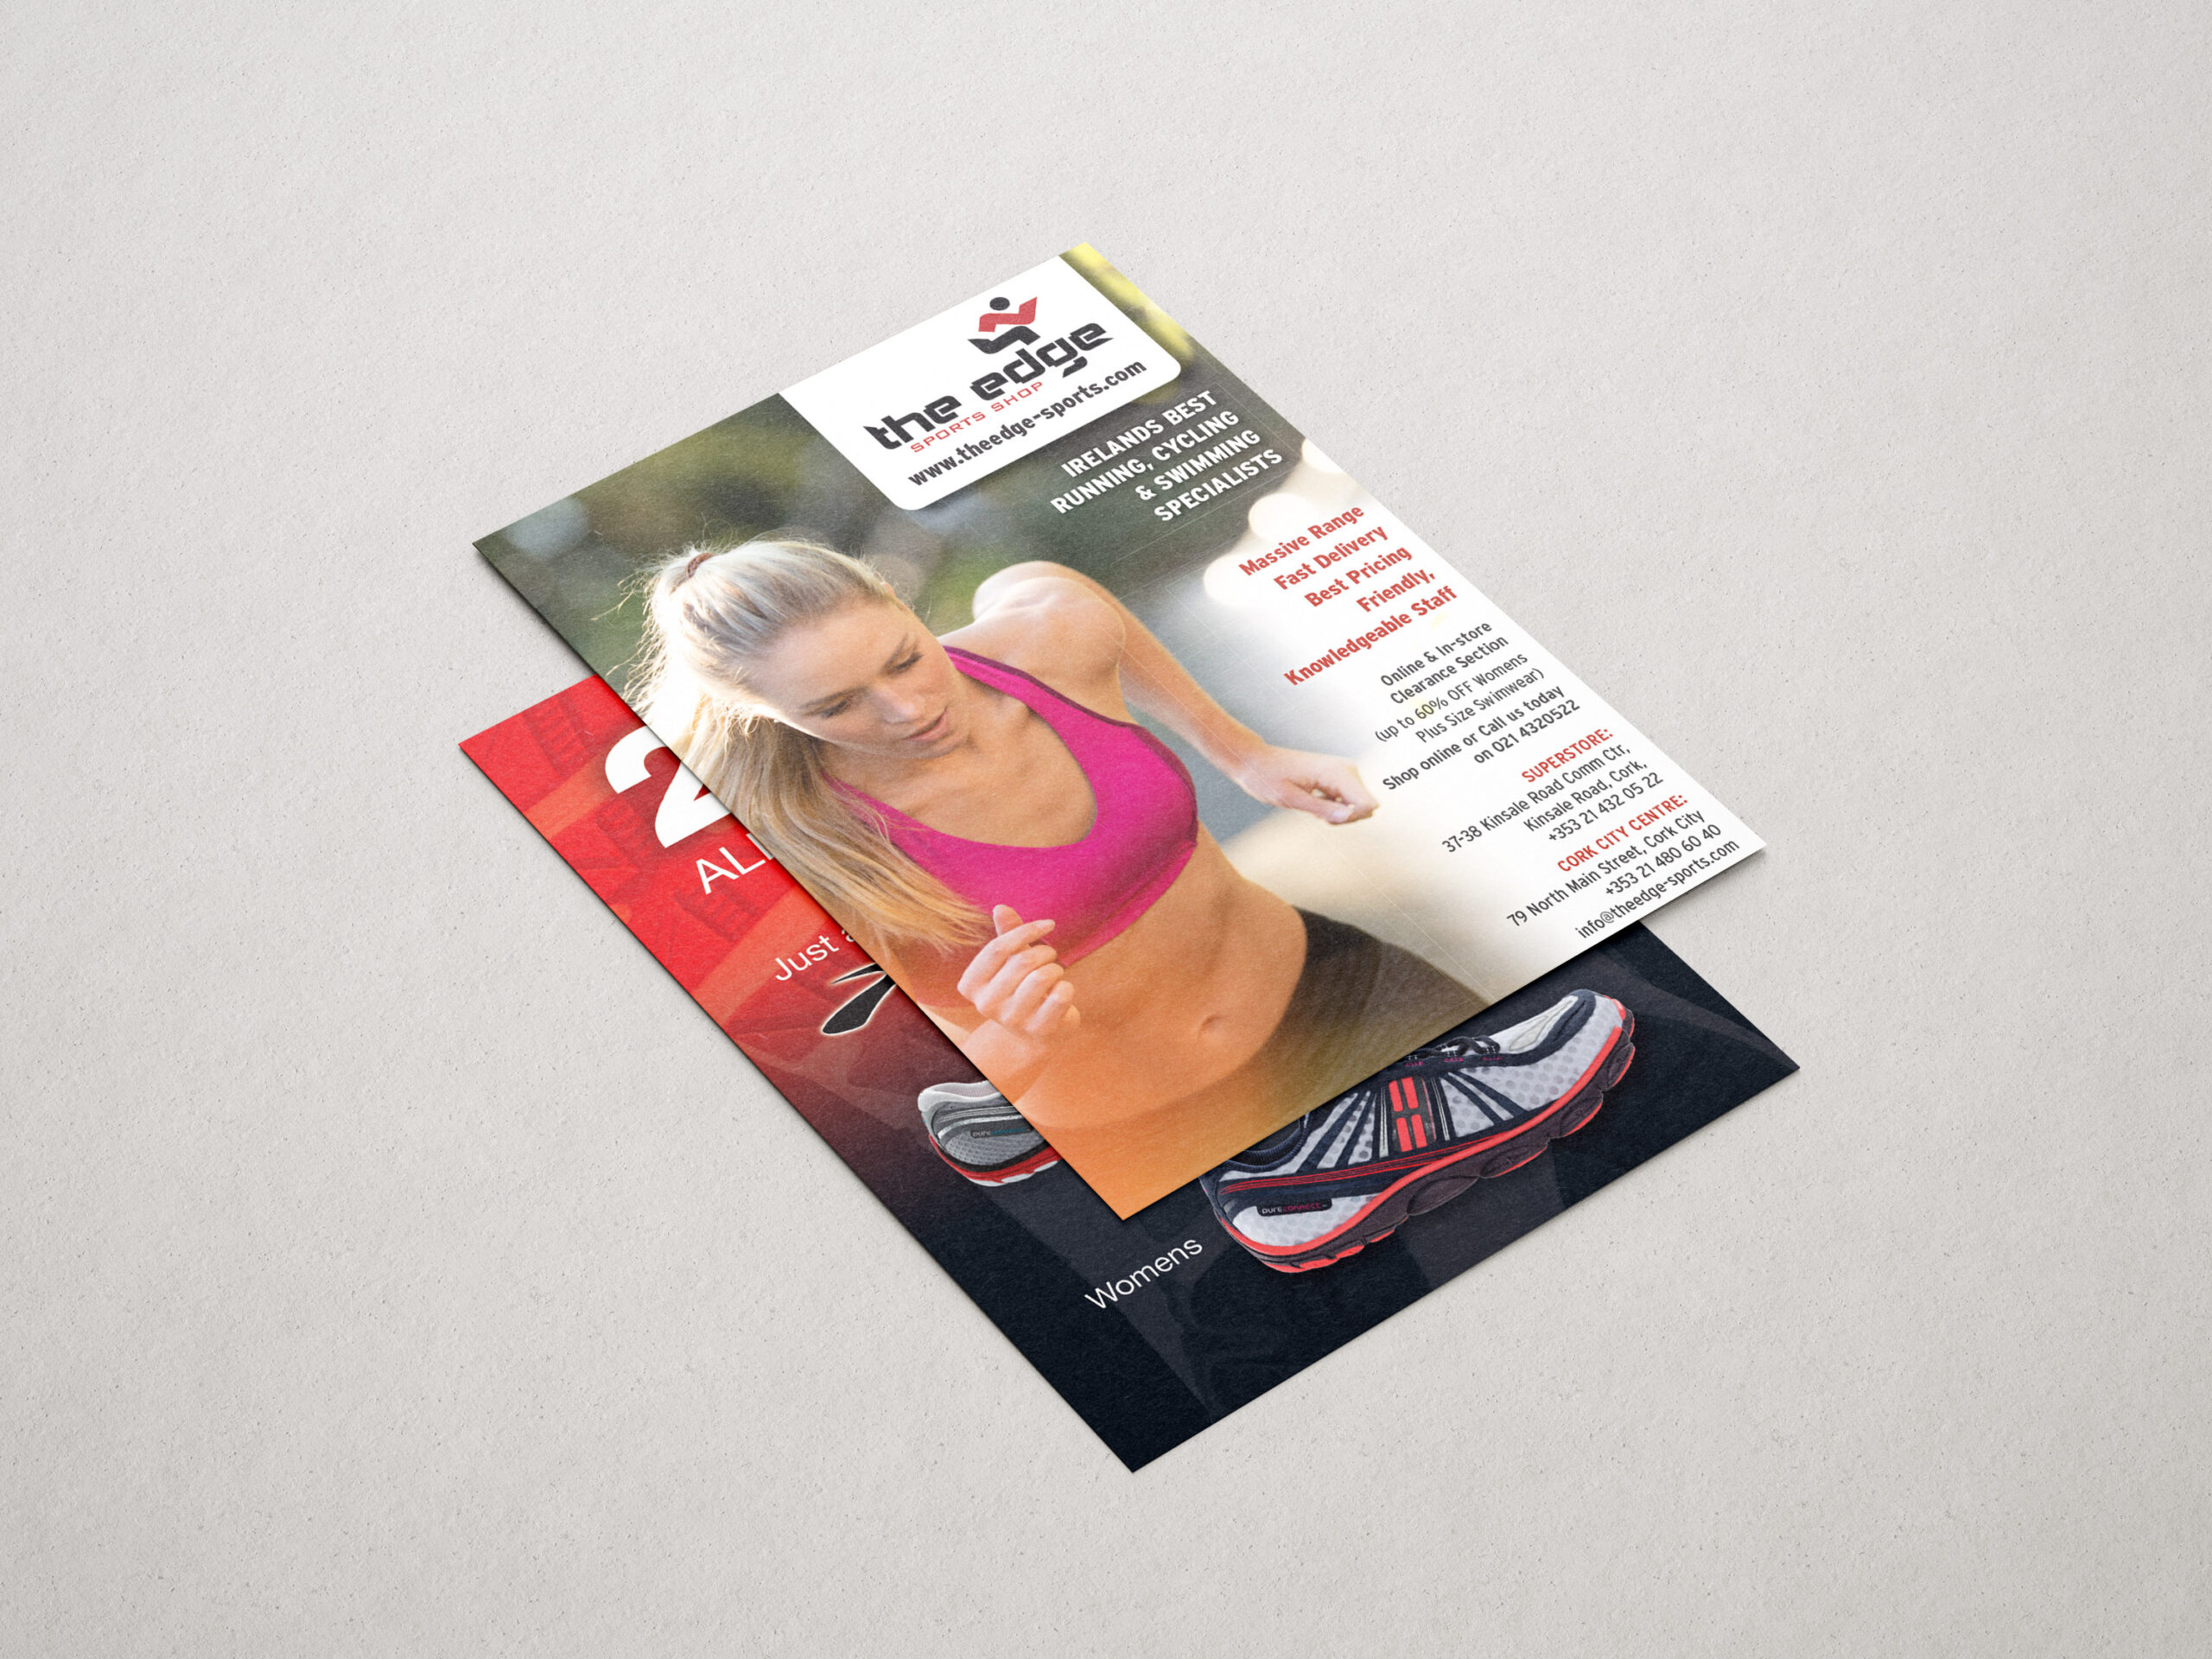 Both sides of an A4 Leaflet for the The Edge